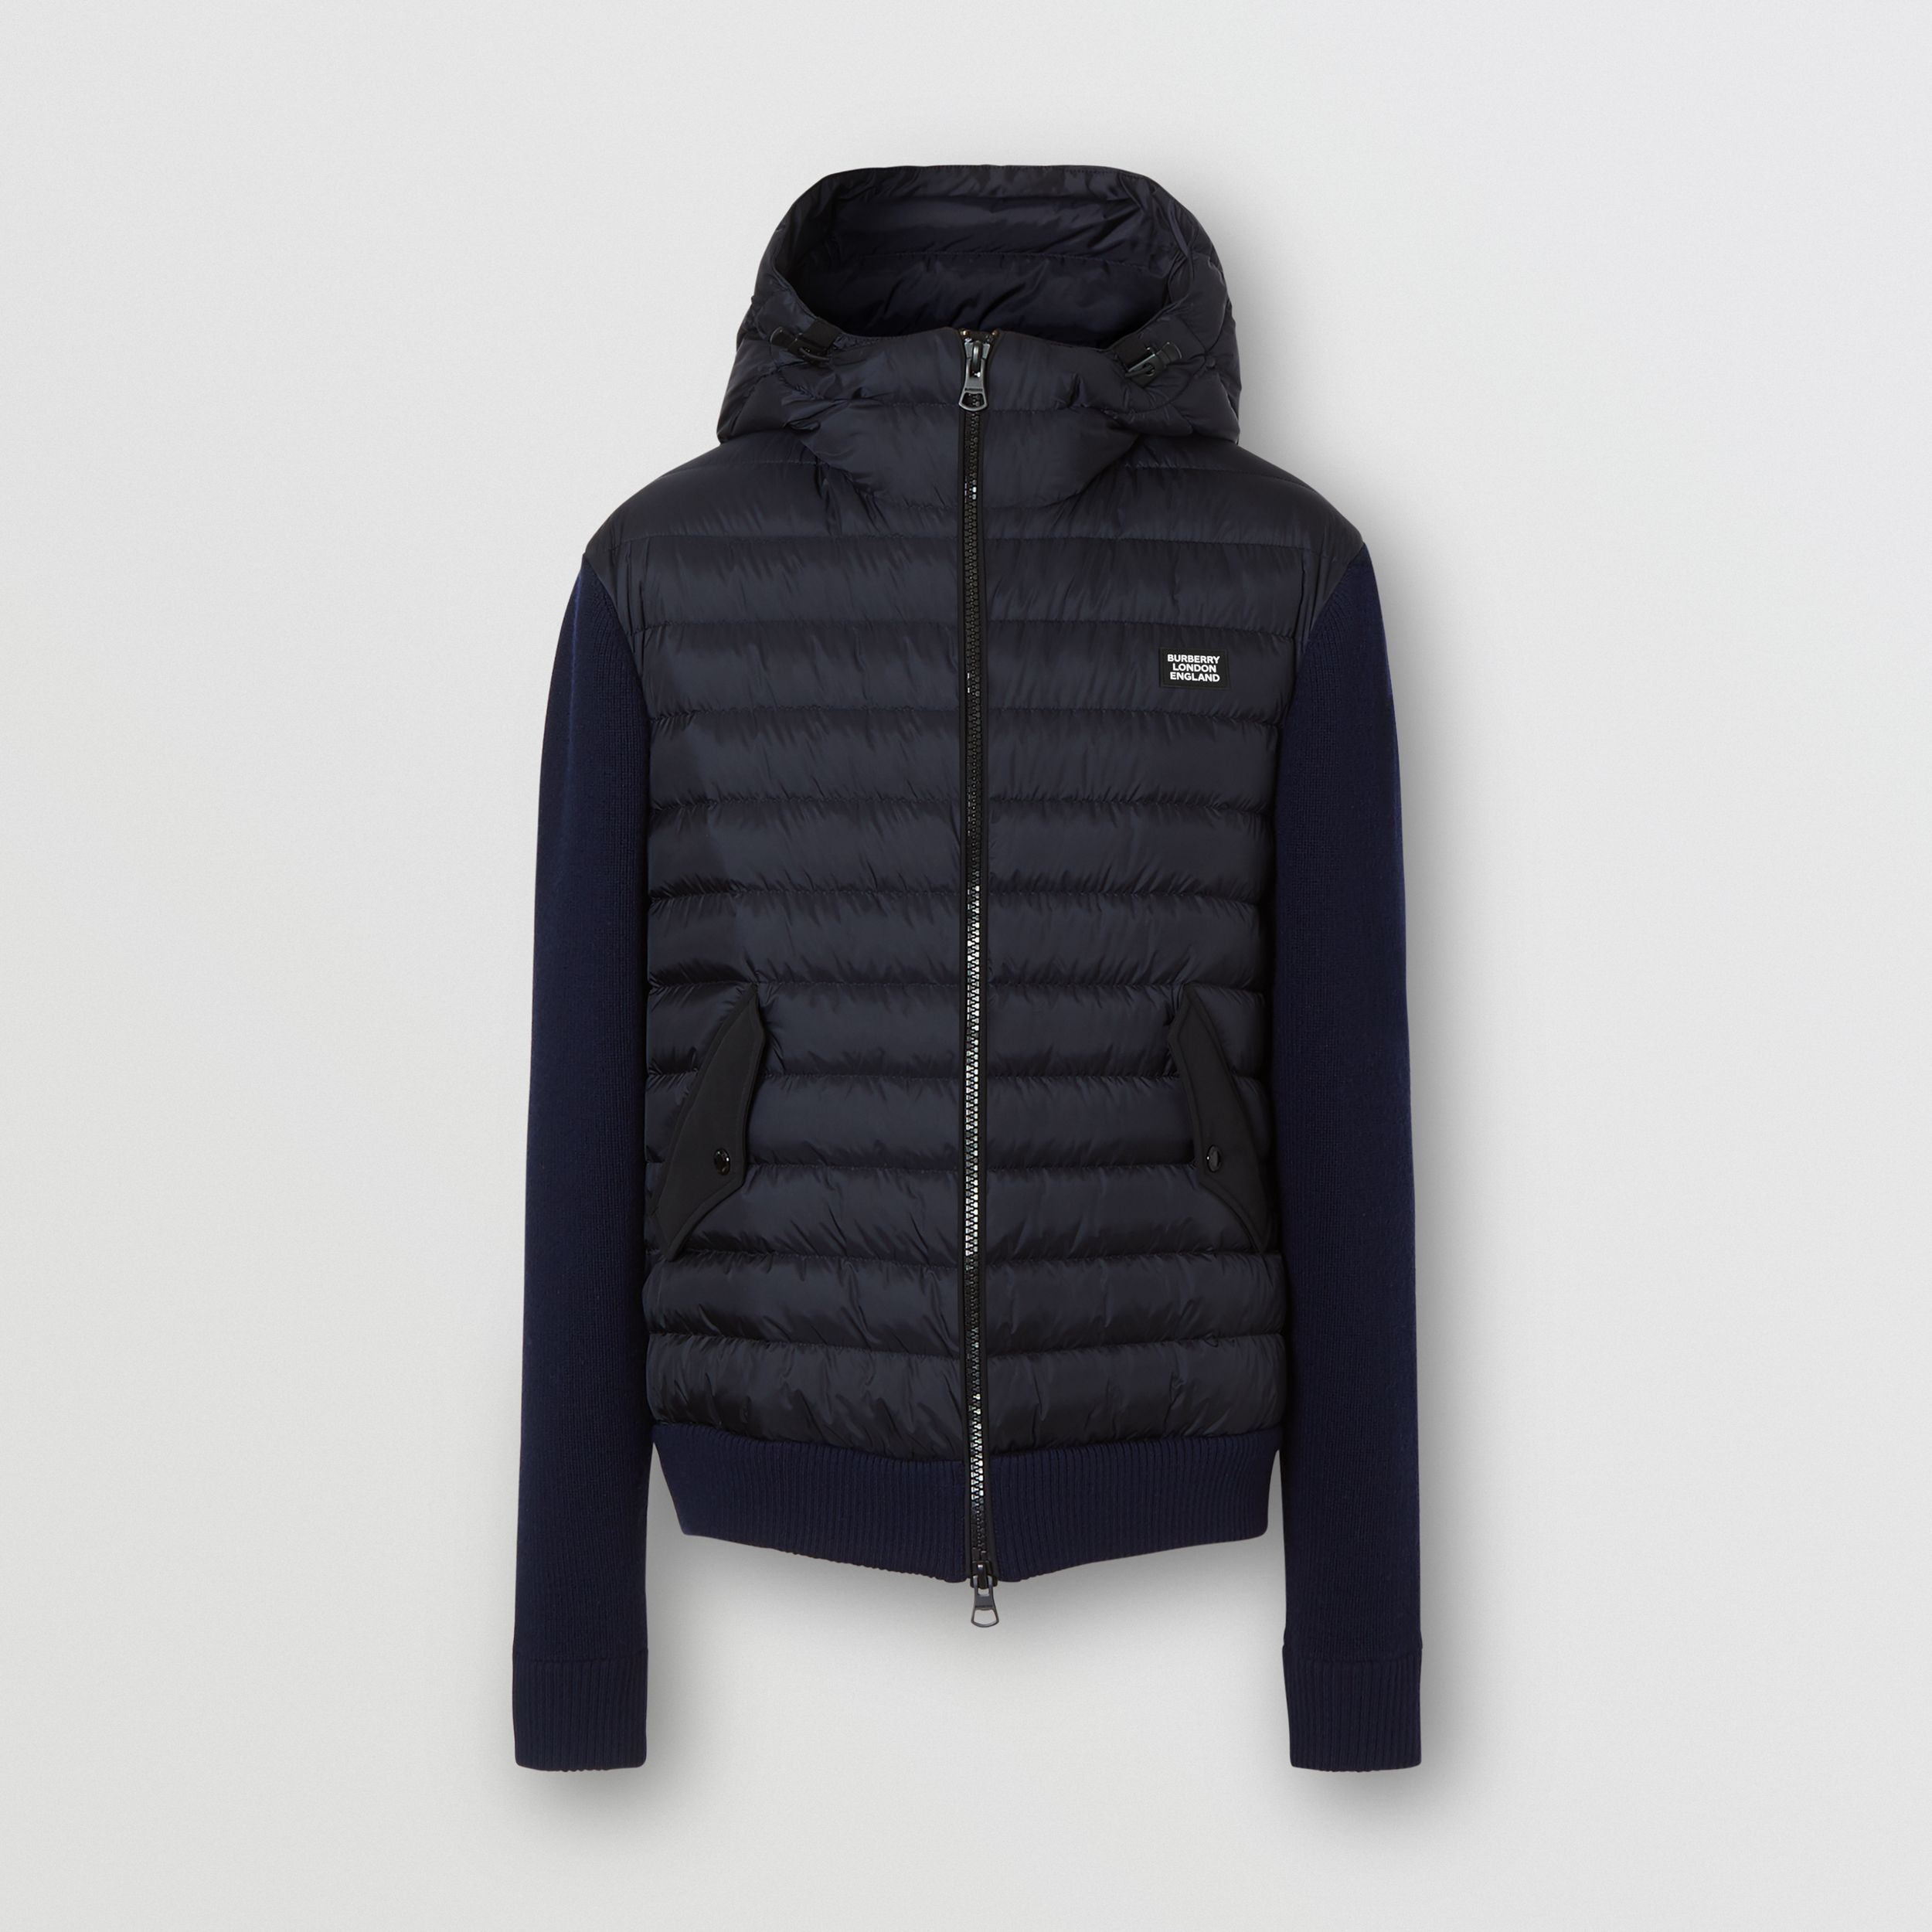 Puffer Detail Technical Knit Hooded Jacket in Navy - Men | Burberry - 4